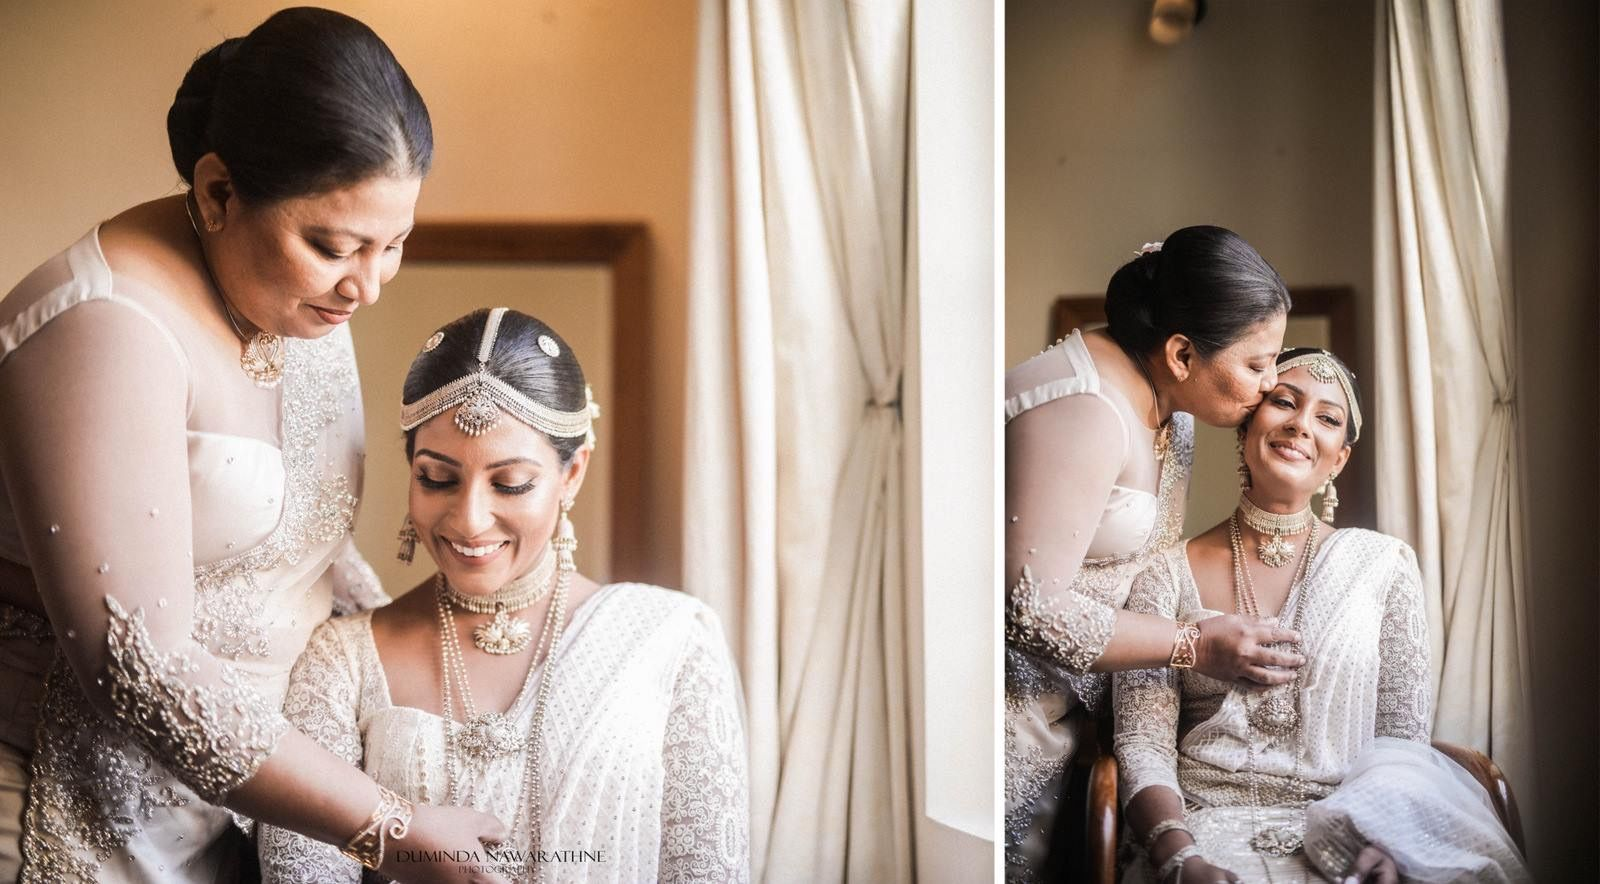 Mother Of The Bride Outfits Designed And Created By Indi Yapa Abeywardena Make Up Hair And Styling By Ruwani Herath Fernan Wedding Dresses Bride Bridal Party